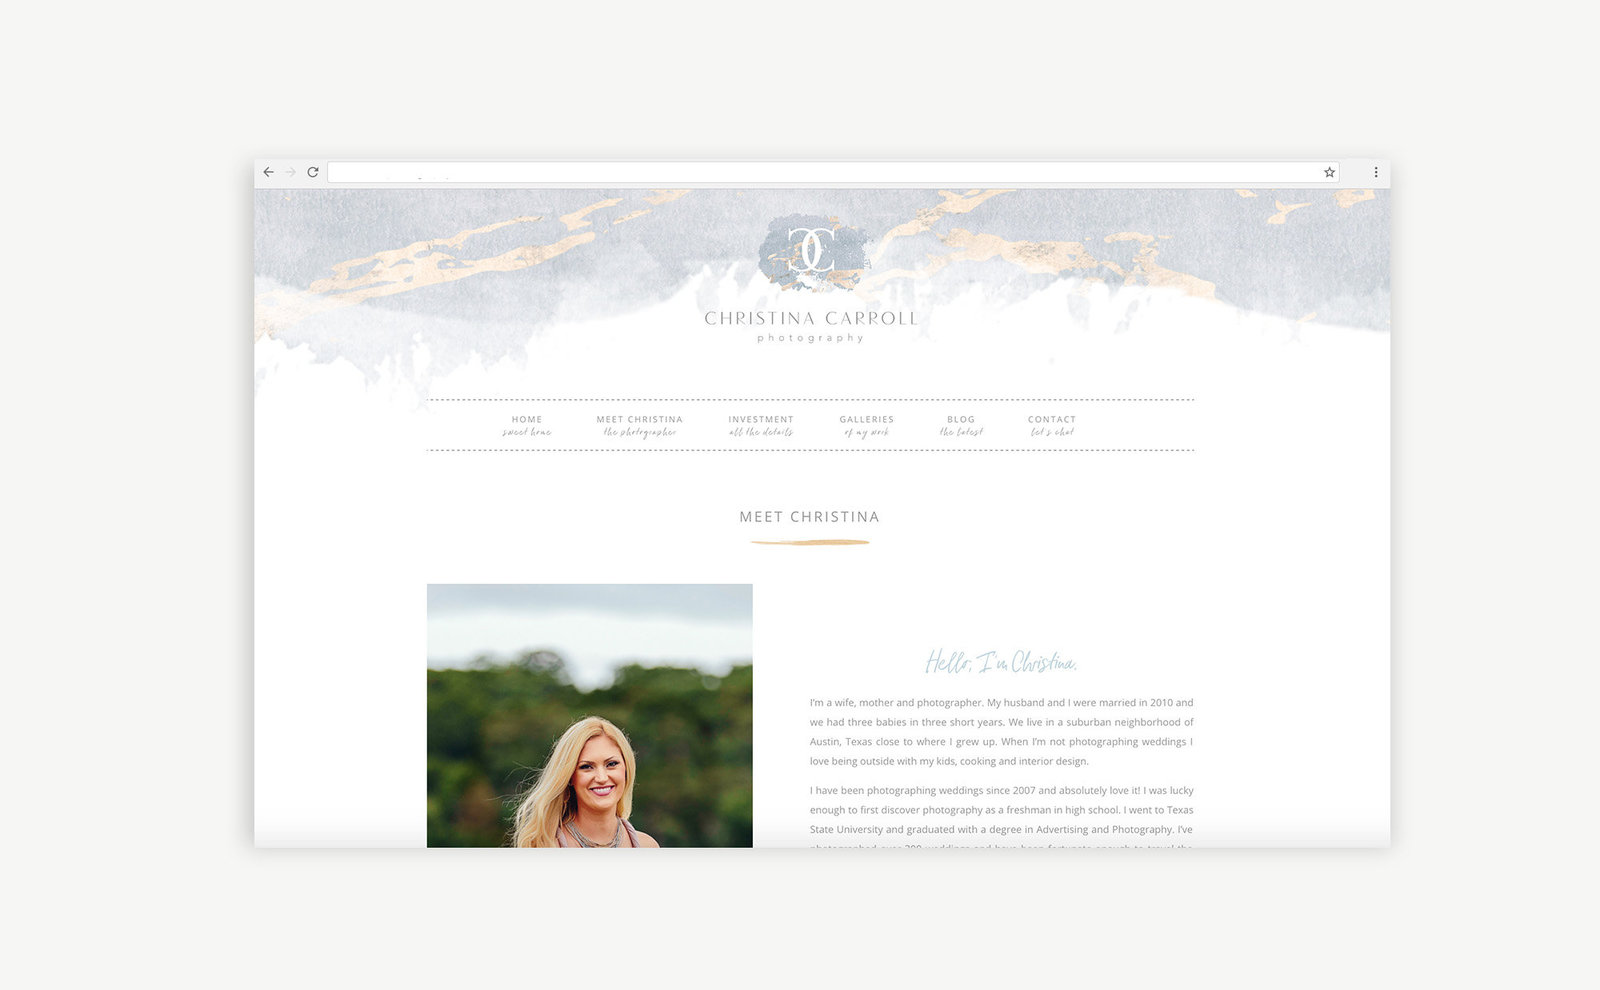 branding-for-photographers-web-design-christina-carroll-02